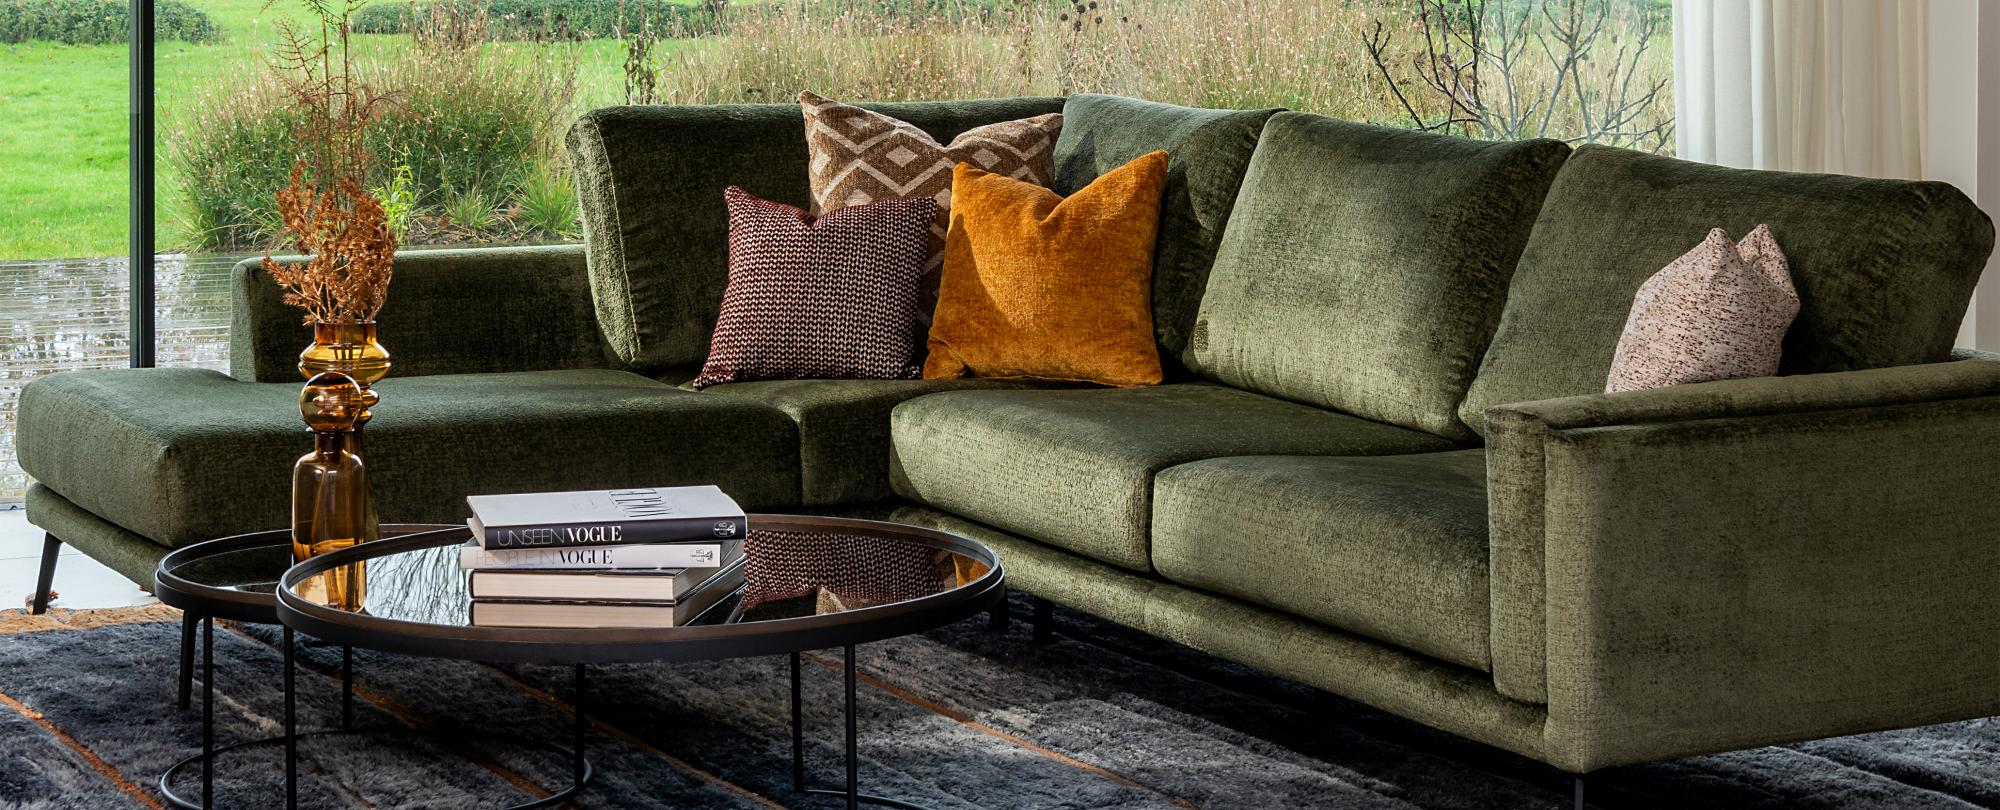 sofa covered with bergen fabric